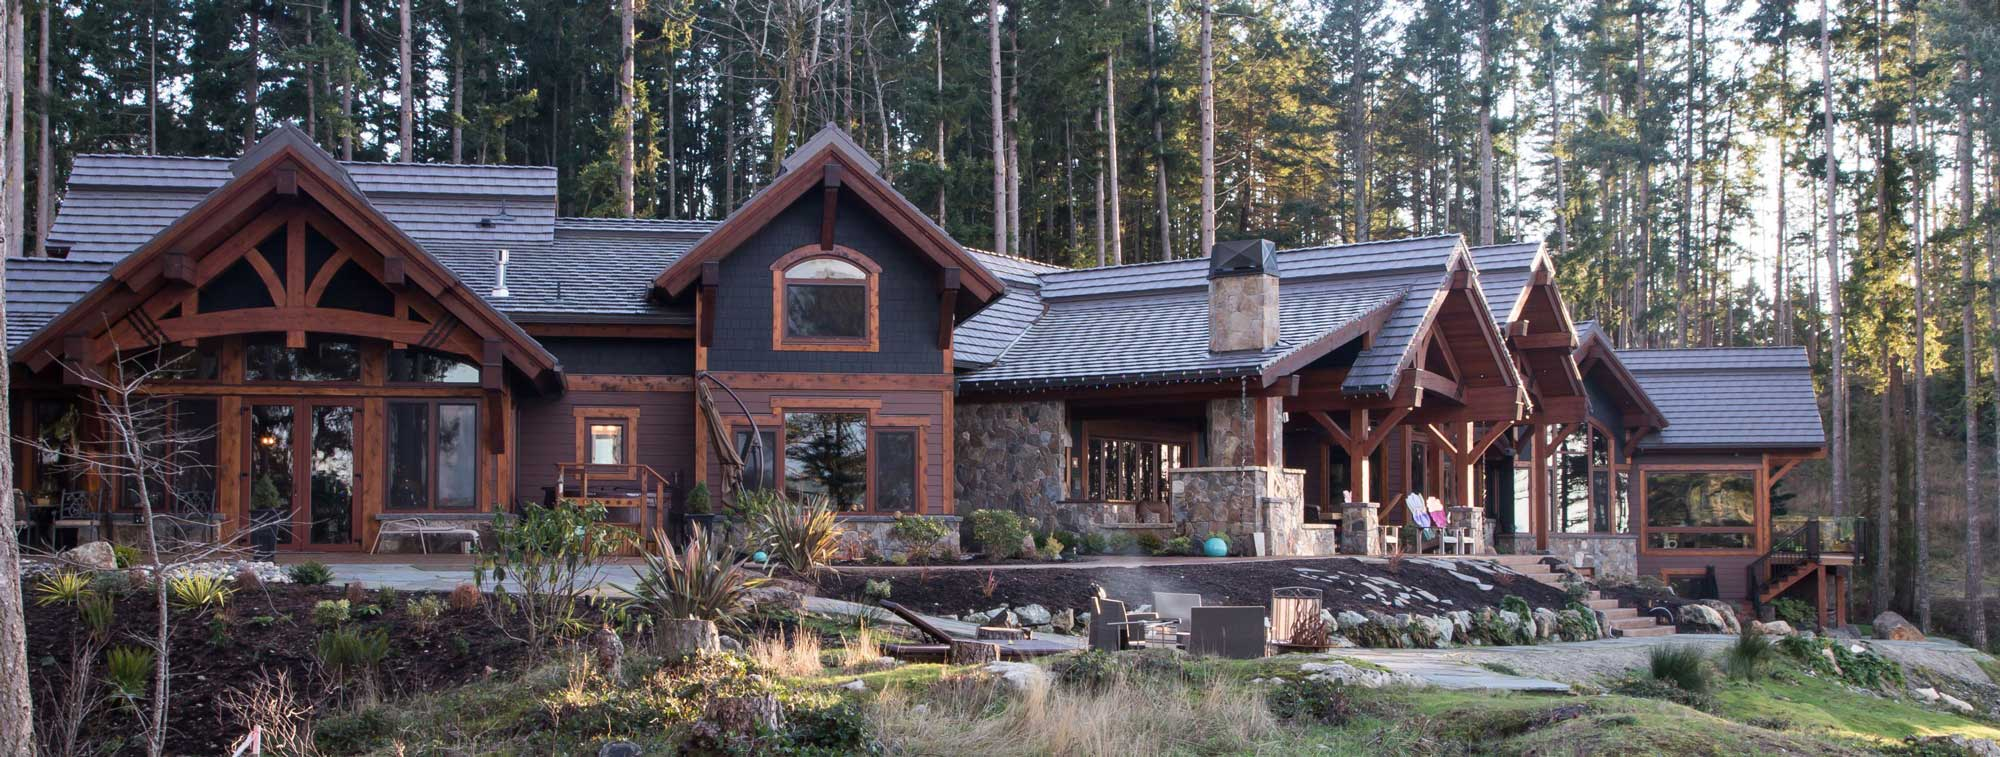 Exterior: Timber Frame Home Construction